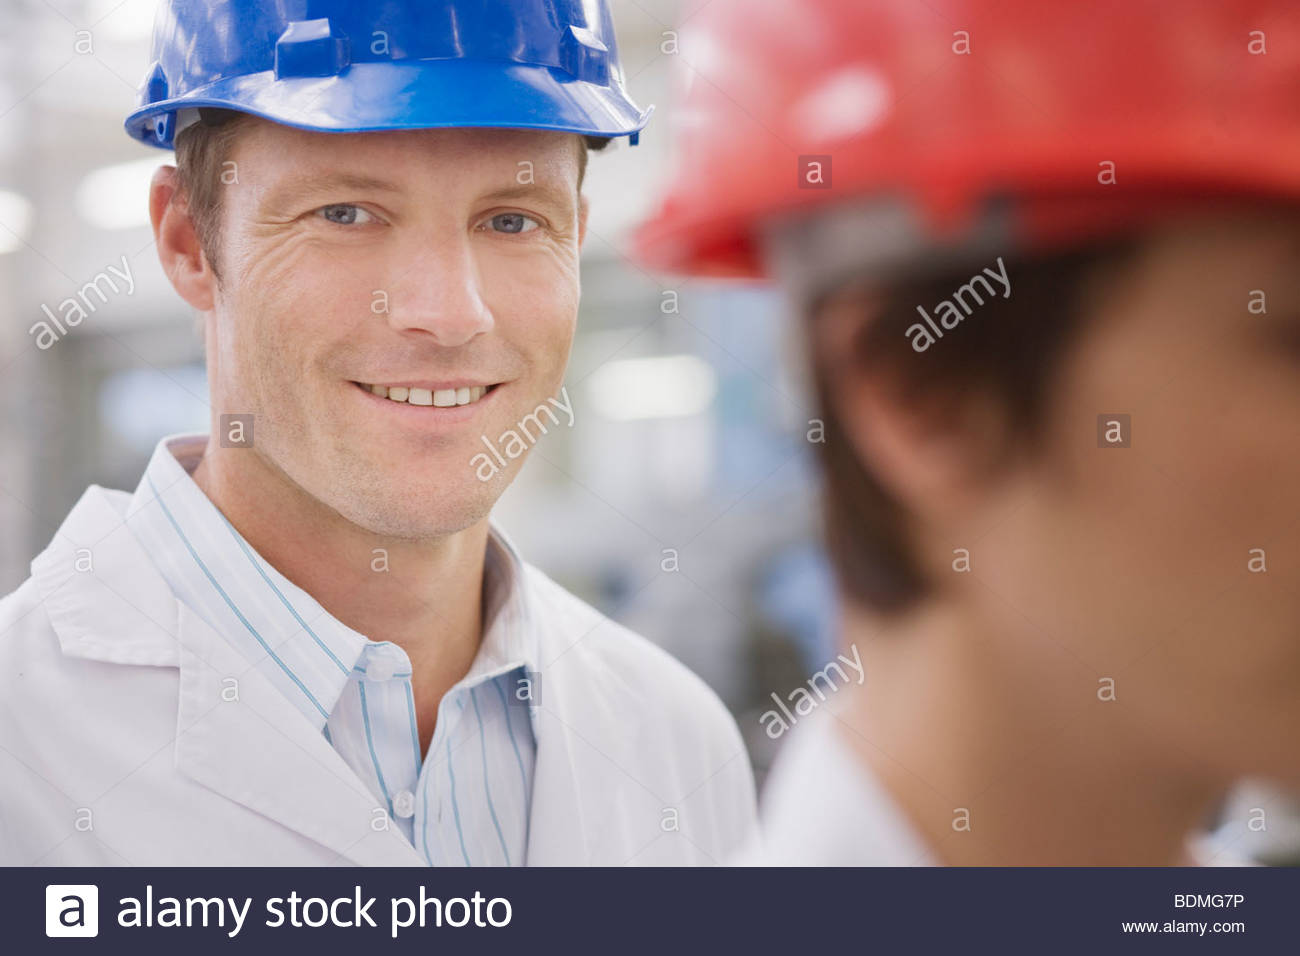 Man in hard-hat and lab coat smiling - Stock Image